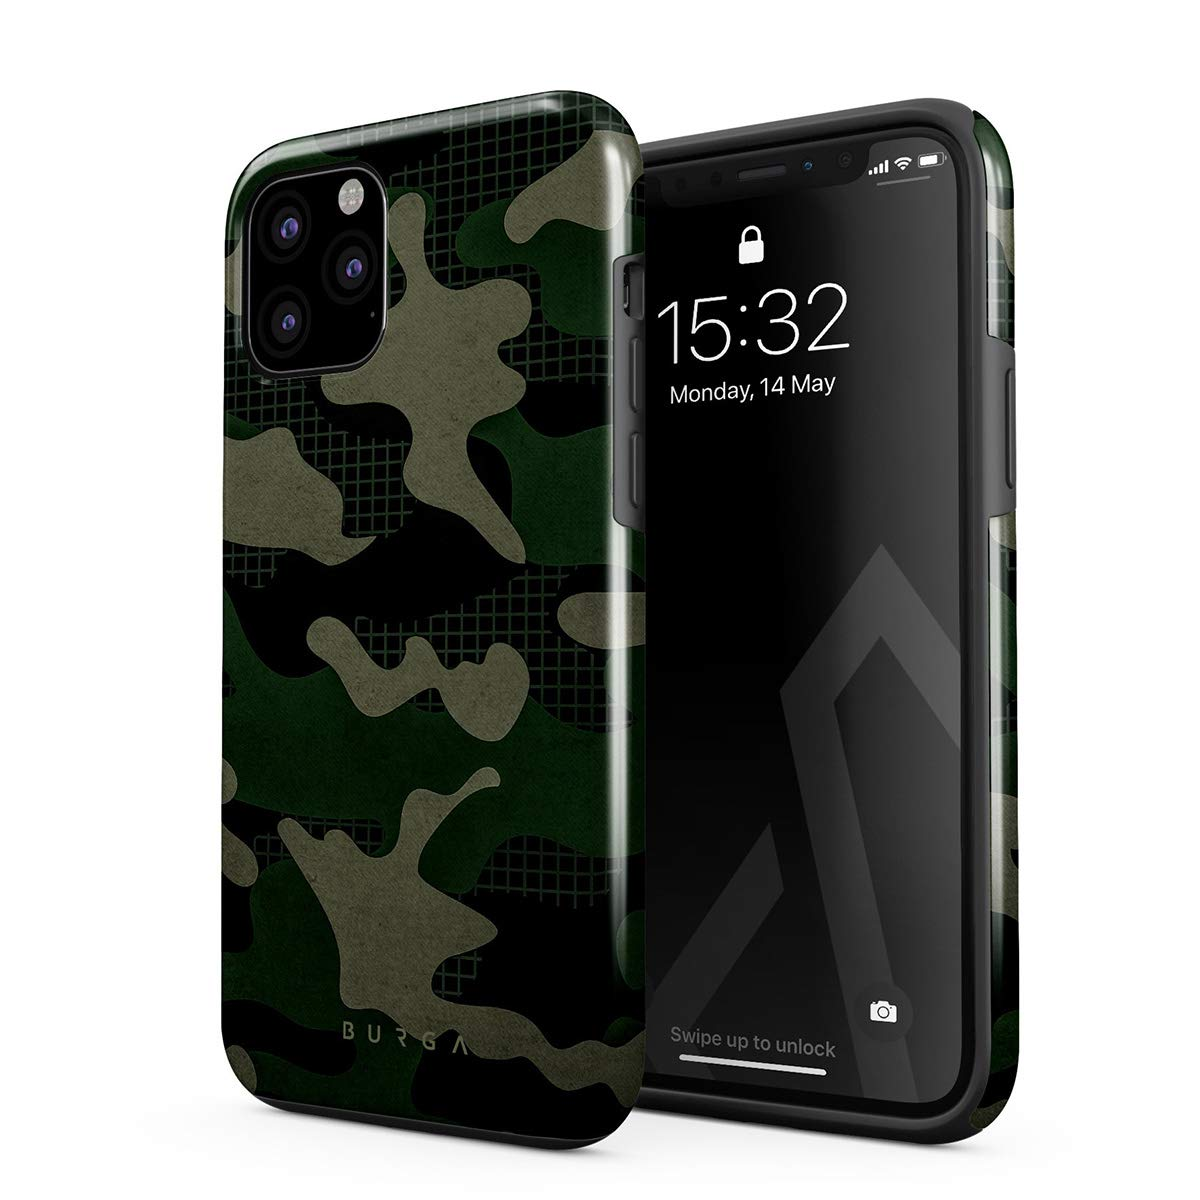 BURGA Phone Case Compatible with iPhone 11 PRO - Jungle Military Green Camo Camouflage Cute Case for Girls Heavy Duty Shockproof Dual Layer Hard Shell + Silicone Protective Cover